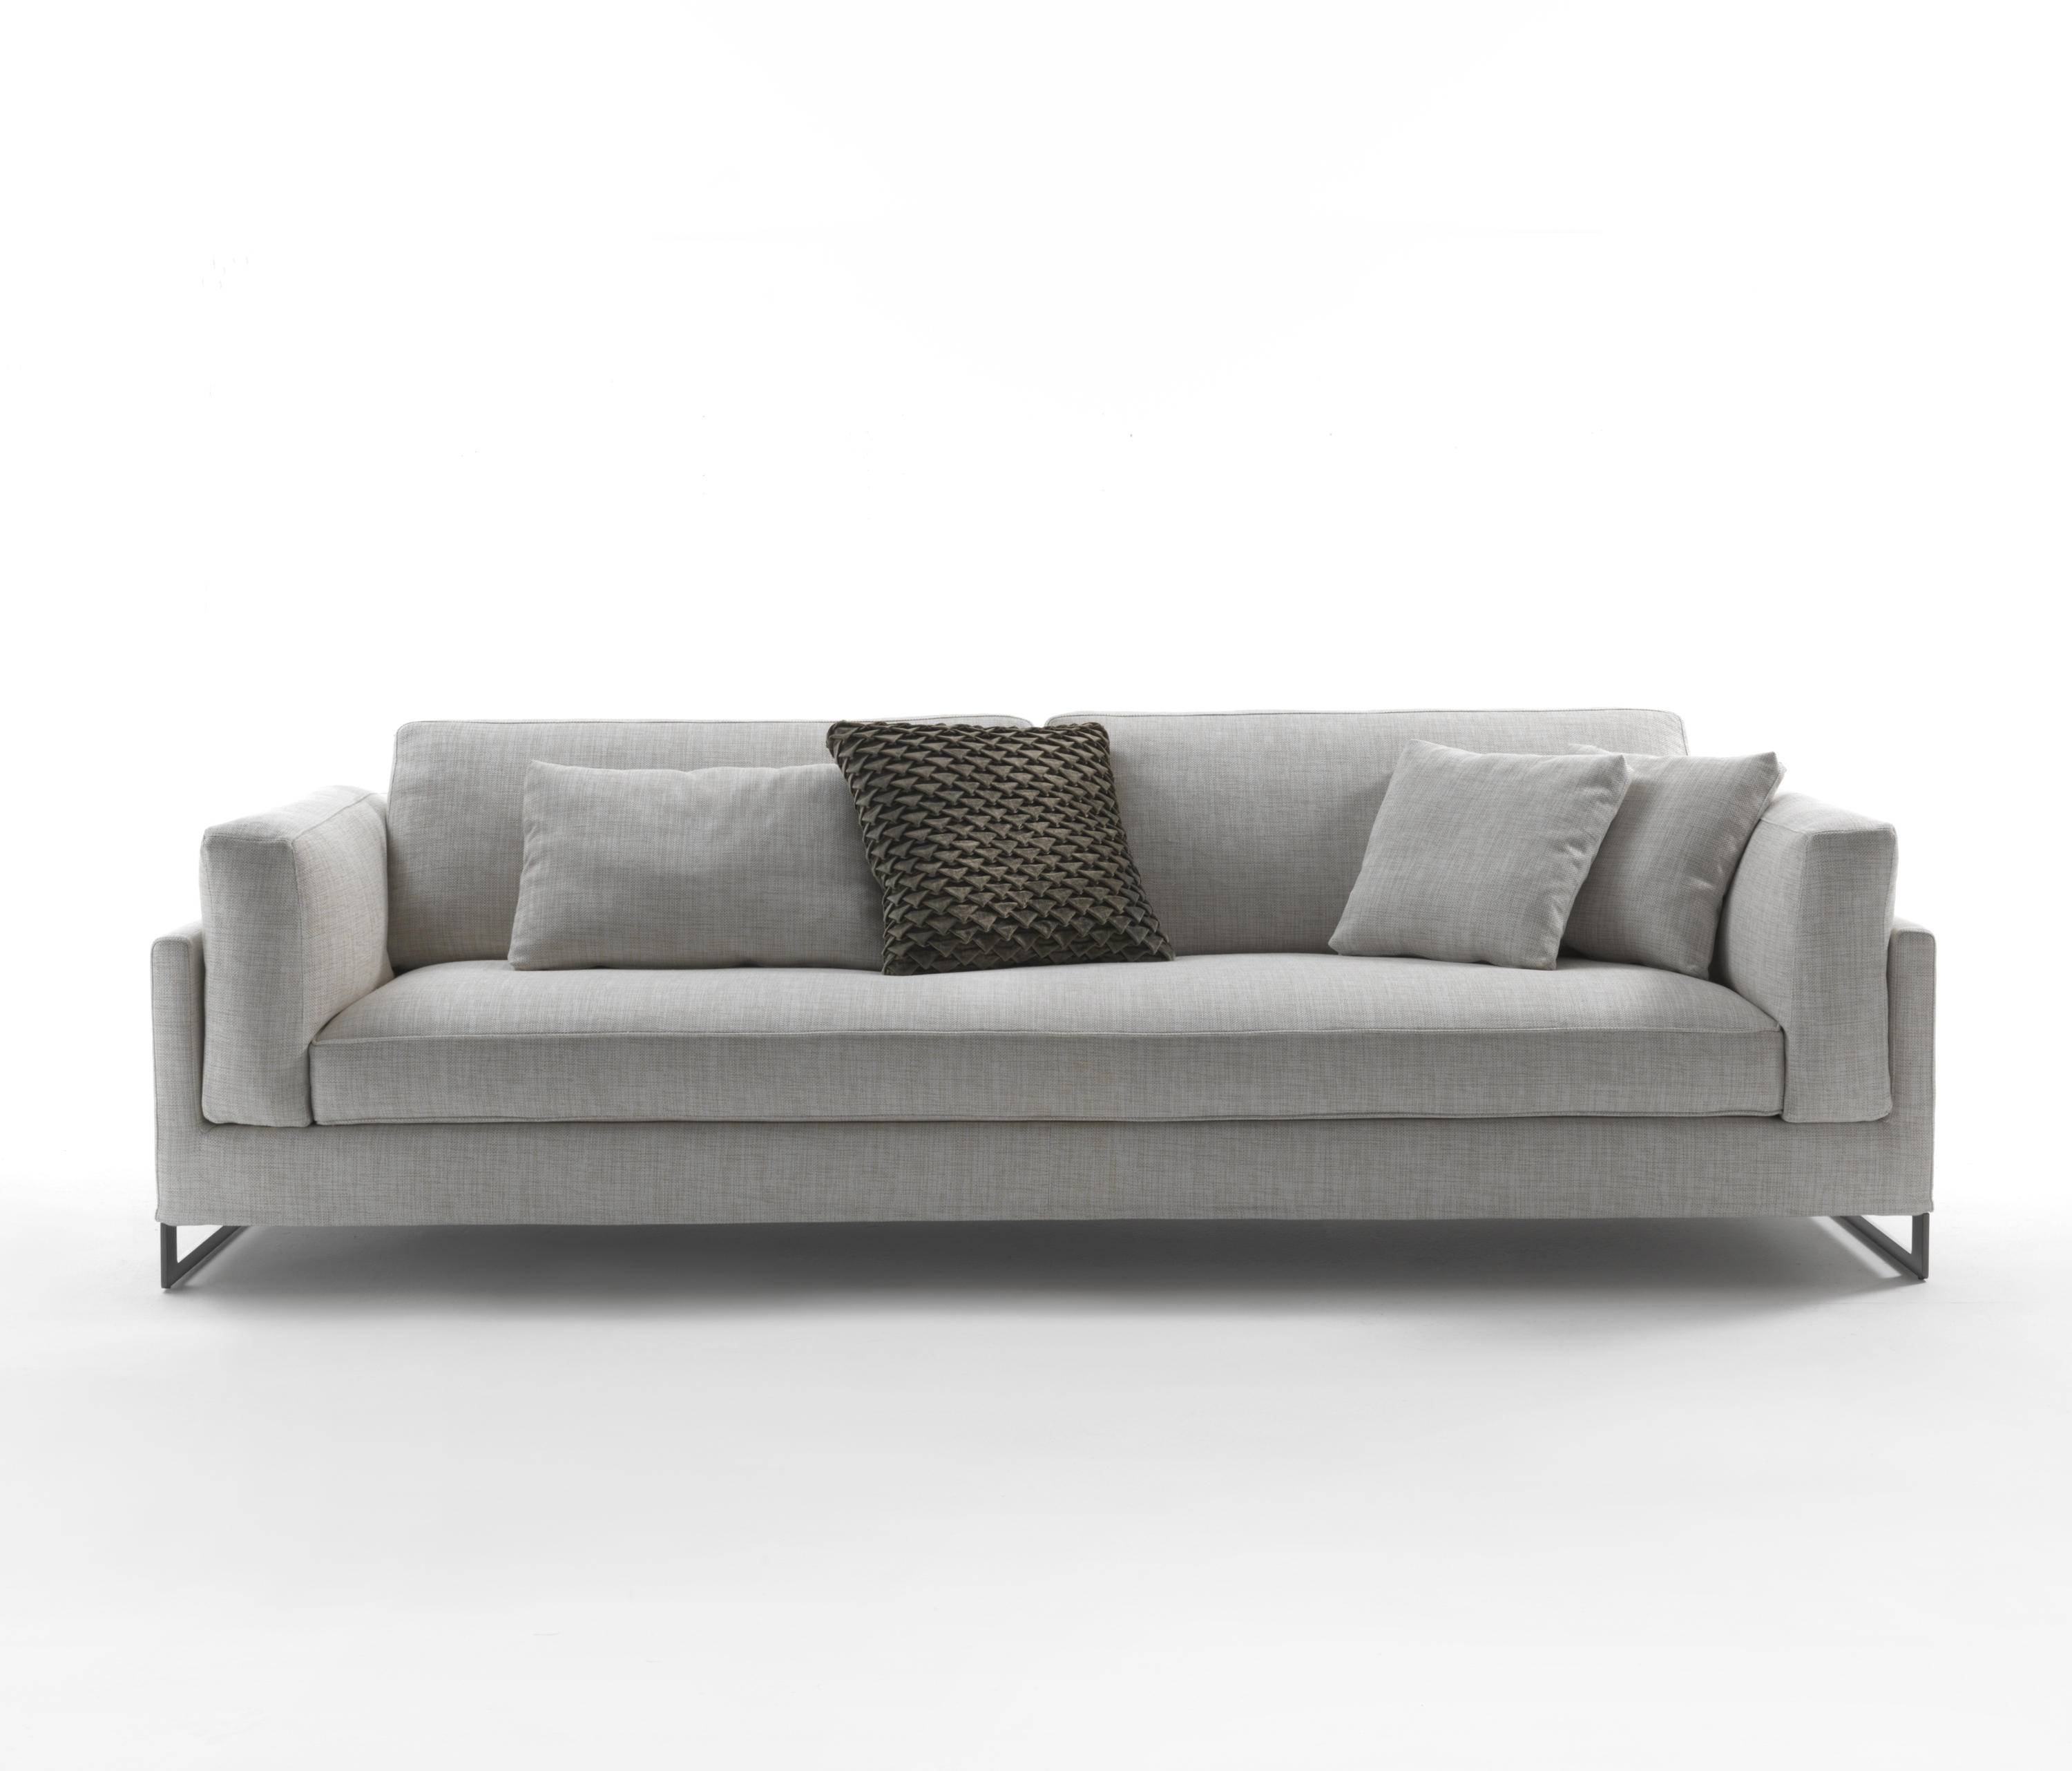 Davis In - Sofas From Frigerio | Architonic within Davis Sofas (Image 6 of 15)